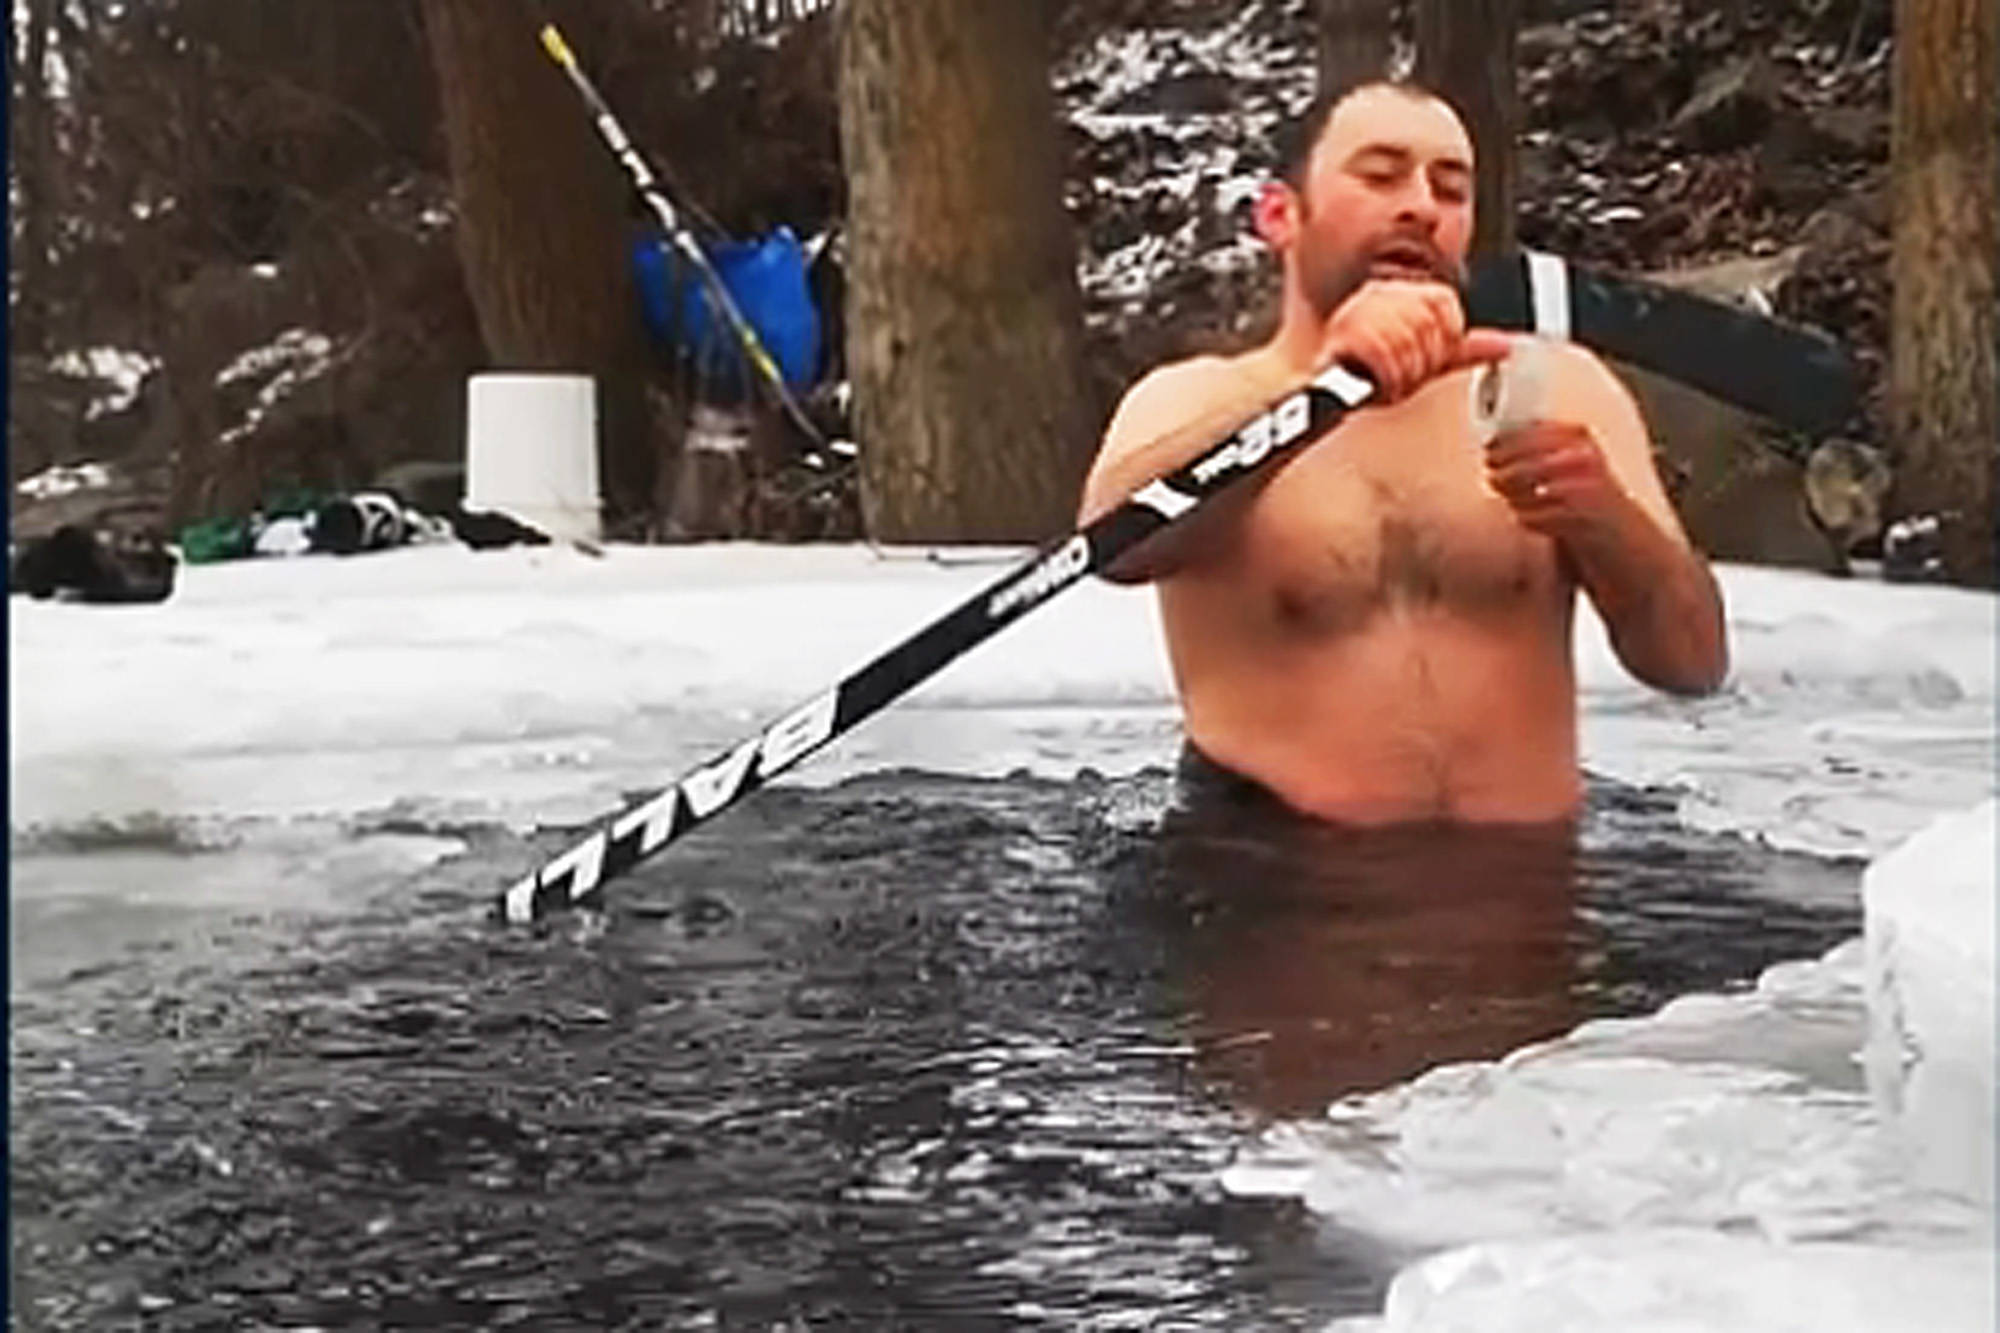 Chase's Mick DeRoo-Ludwig staged a one-man hockey game on the narrow and not entirely frozen Chase Creek to encourage others whose games and seasons were cancelled. (Mick DeRoo-Ludwig/Facebook)